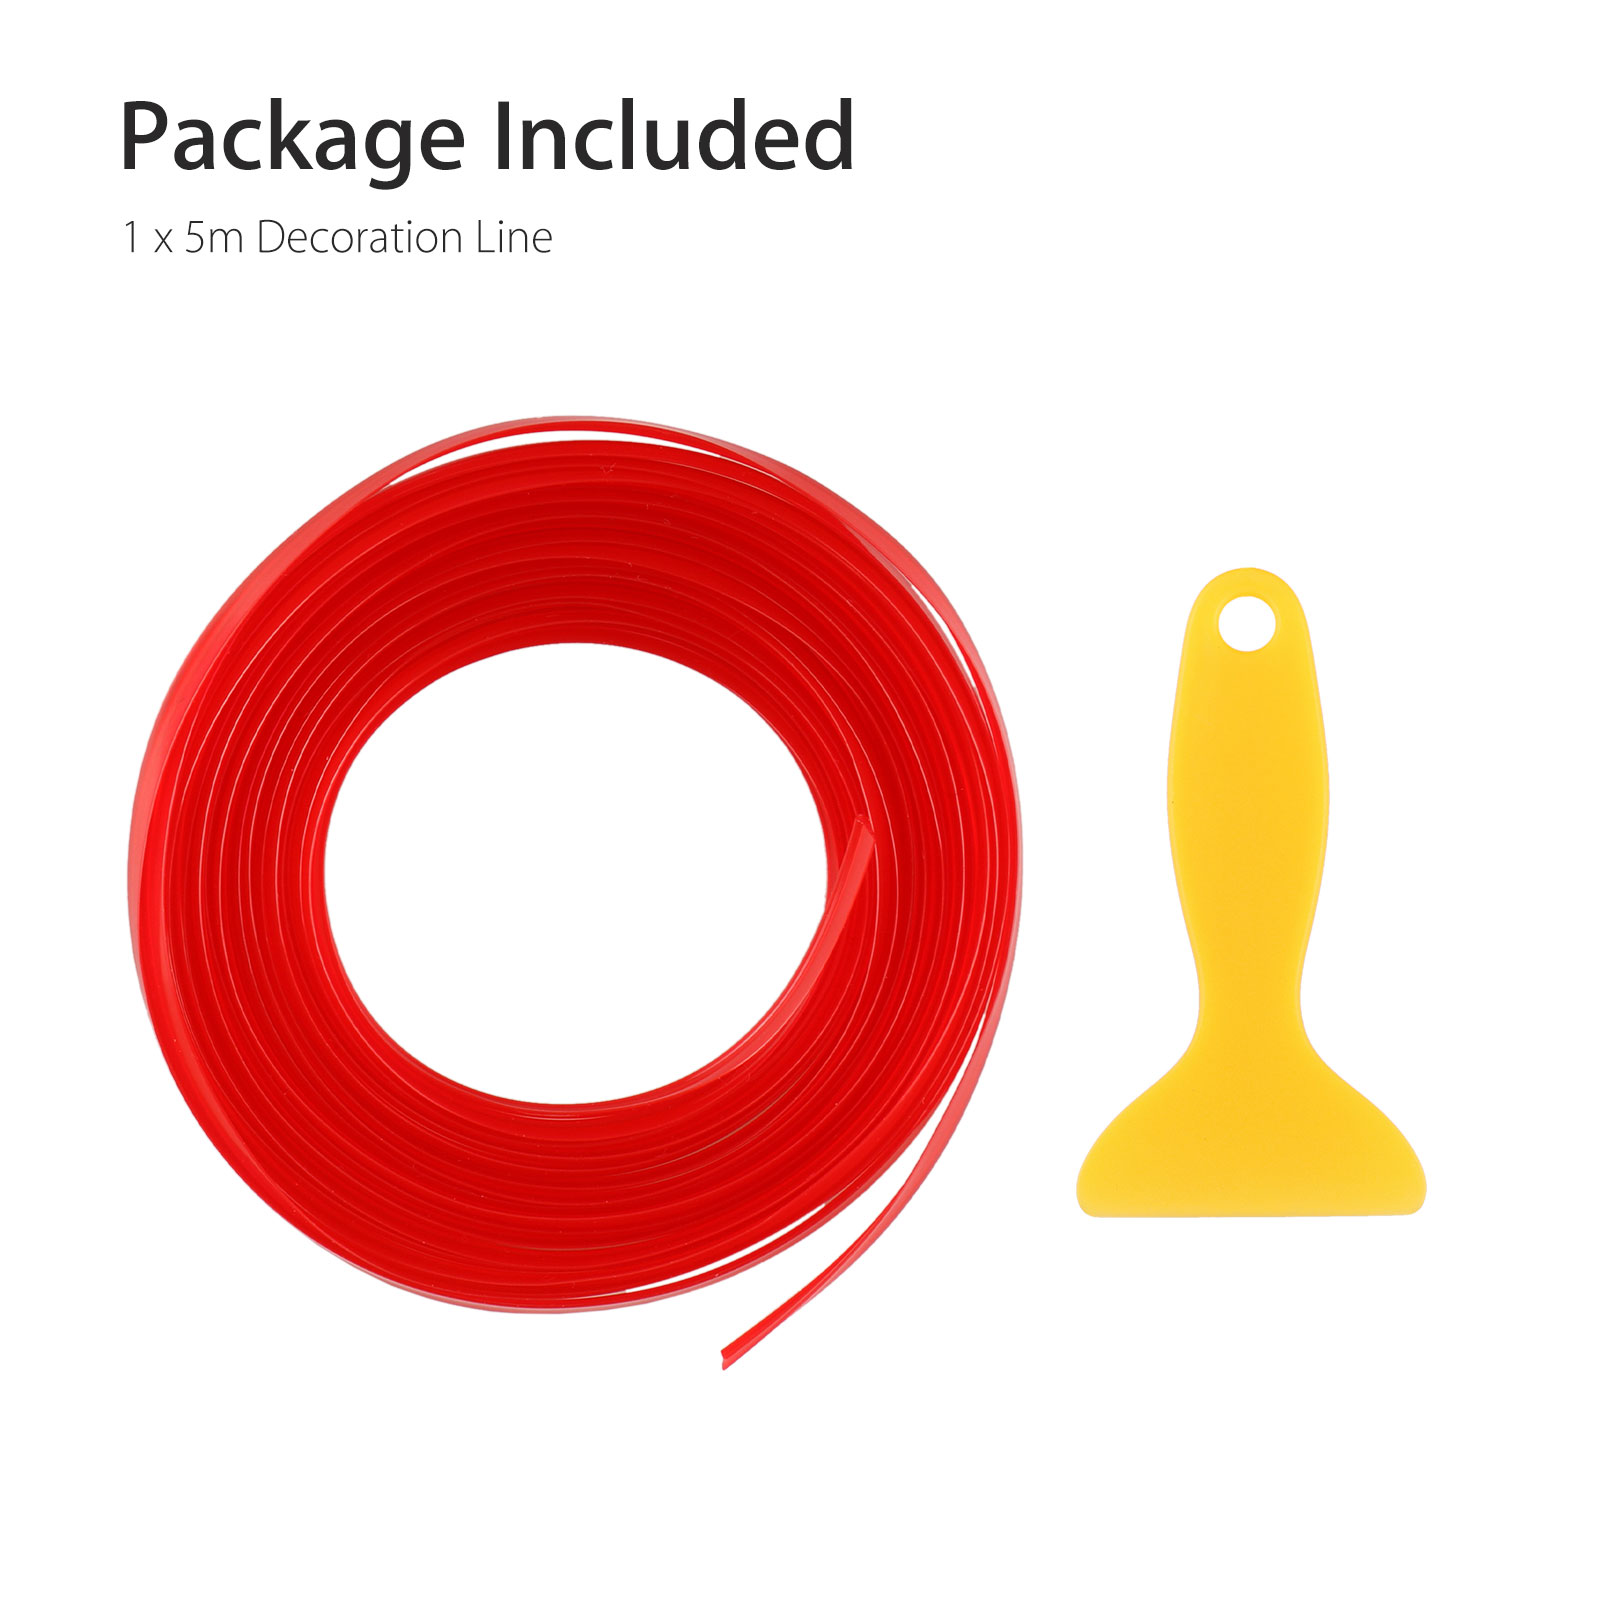 5M-Door-Gap-Trim-Molding-Moulding-Line-Edge-Strip-Red-For-Car-Interior-Accessory thumbnail 9